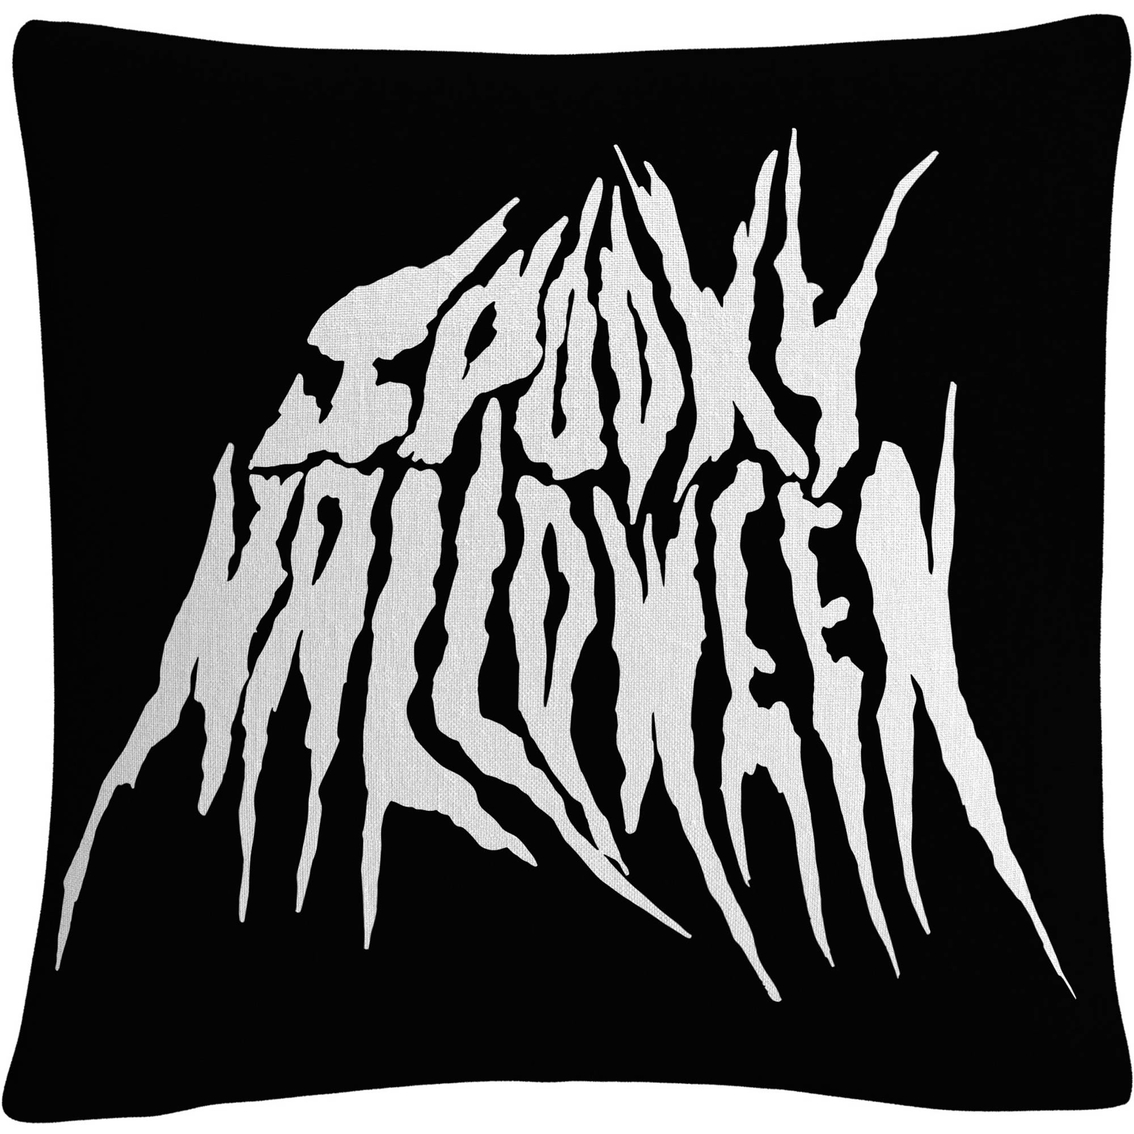 Trademark Fine Art White Spooky Metal Halloween Decorative Throw Pillow Wall Decorative Accents Household Shop The Exchange